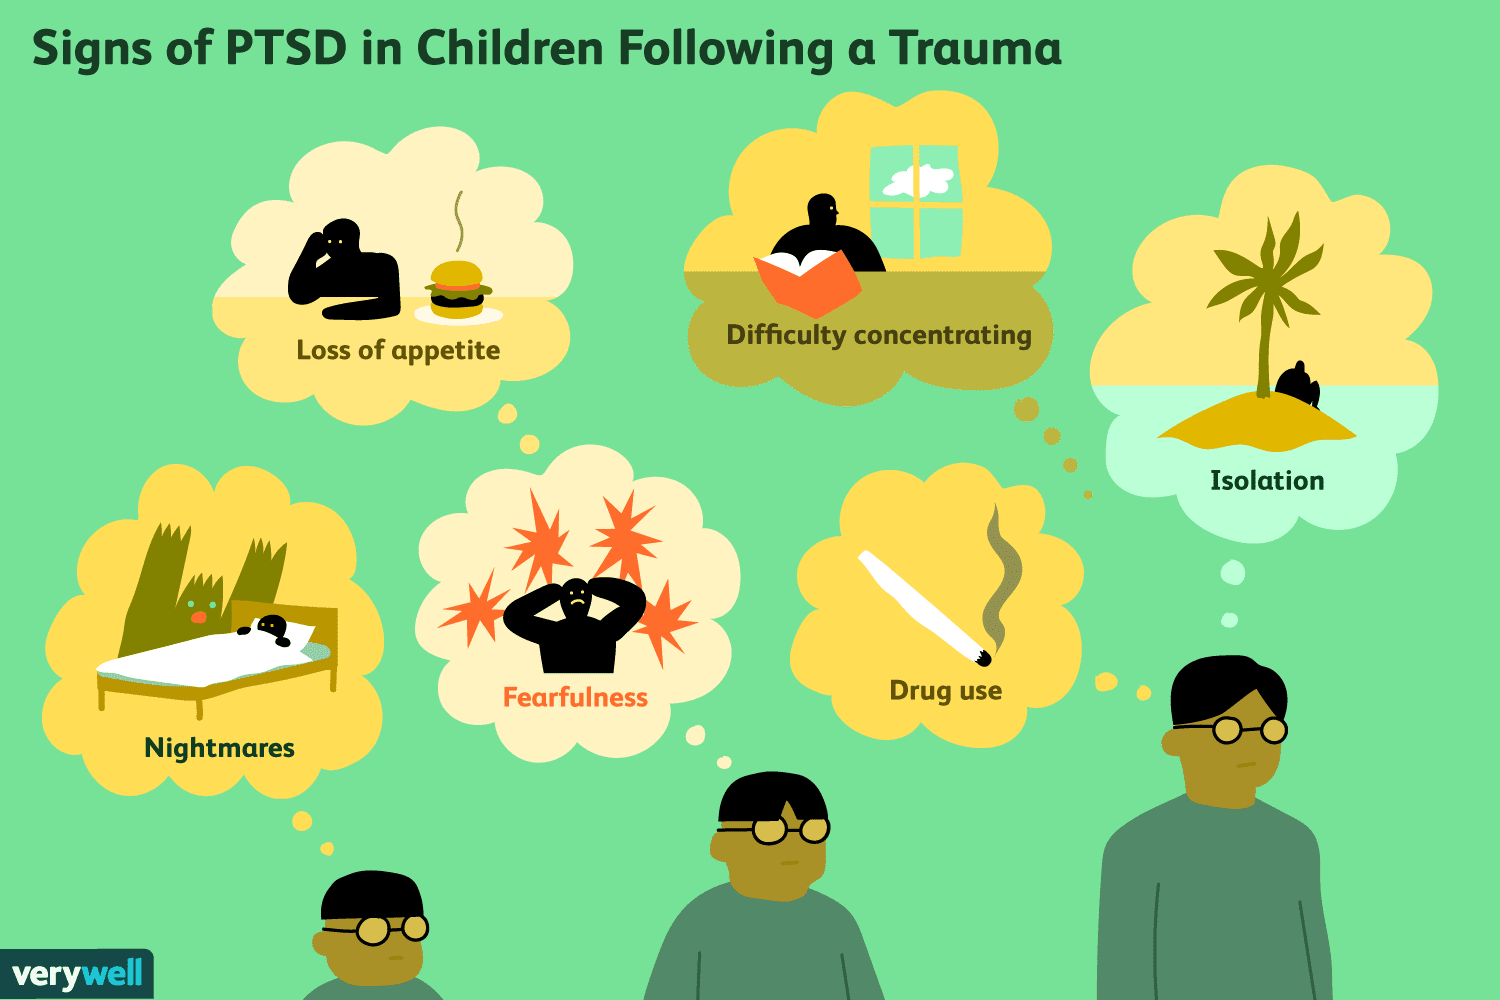 Signs of PTSD in children following a trauma.